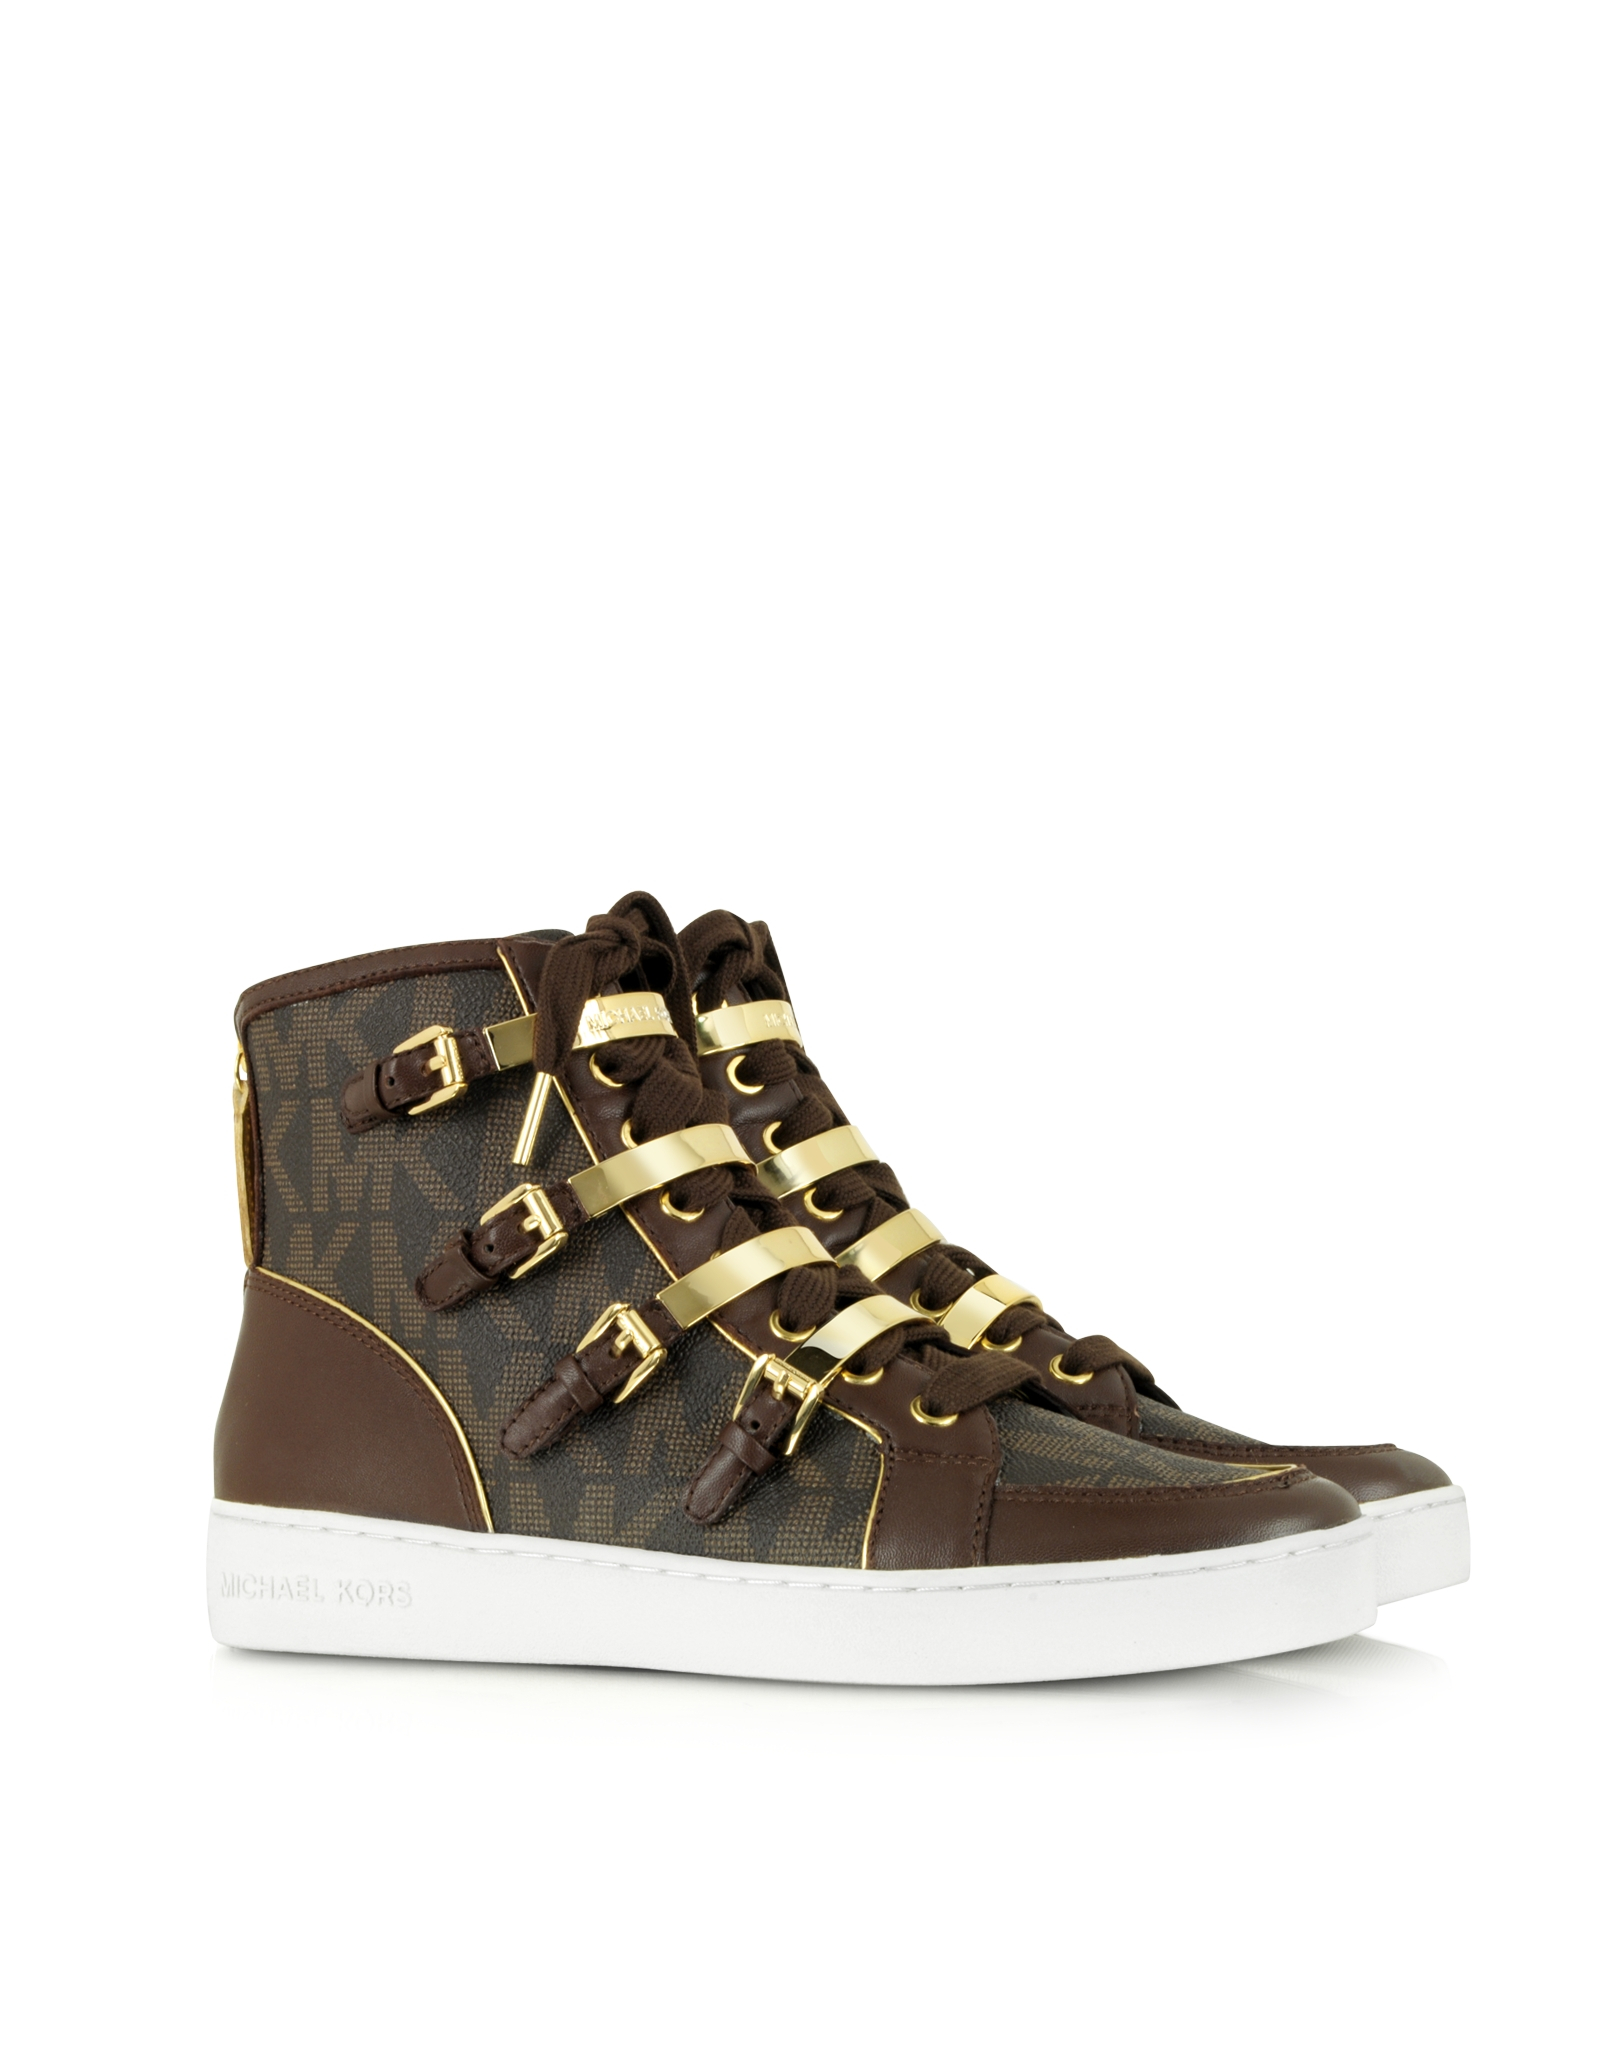 michael kors kimberly brown signature high top sneaker in brown lyst. Black Bedroom Furniture Sets. Home Design Ideas